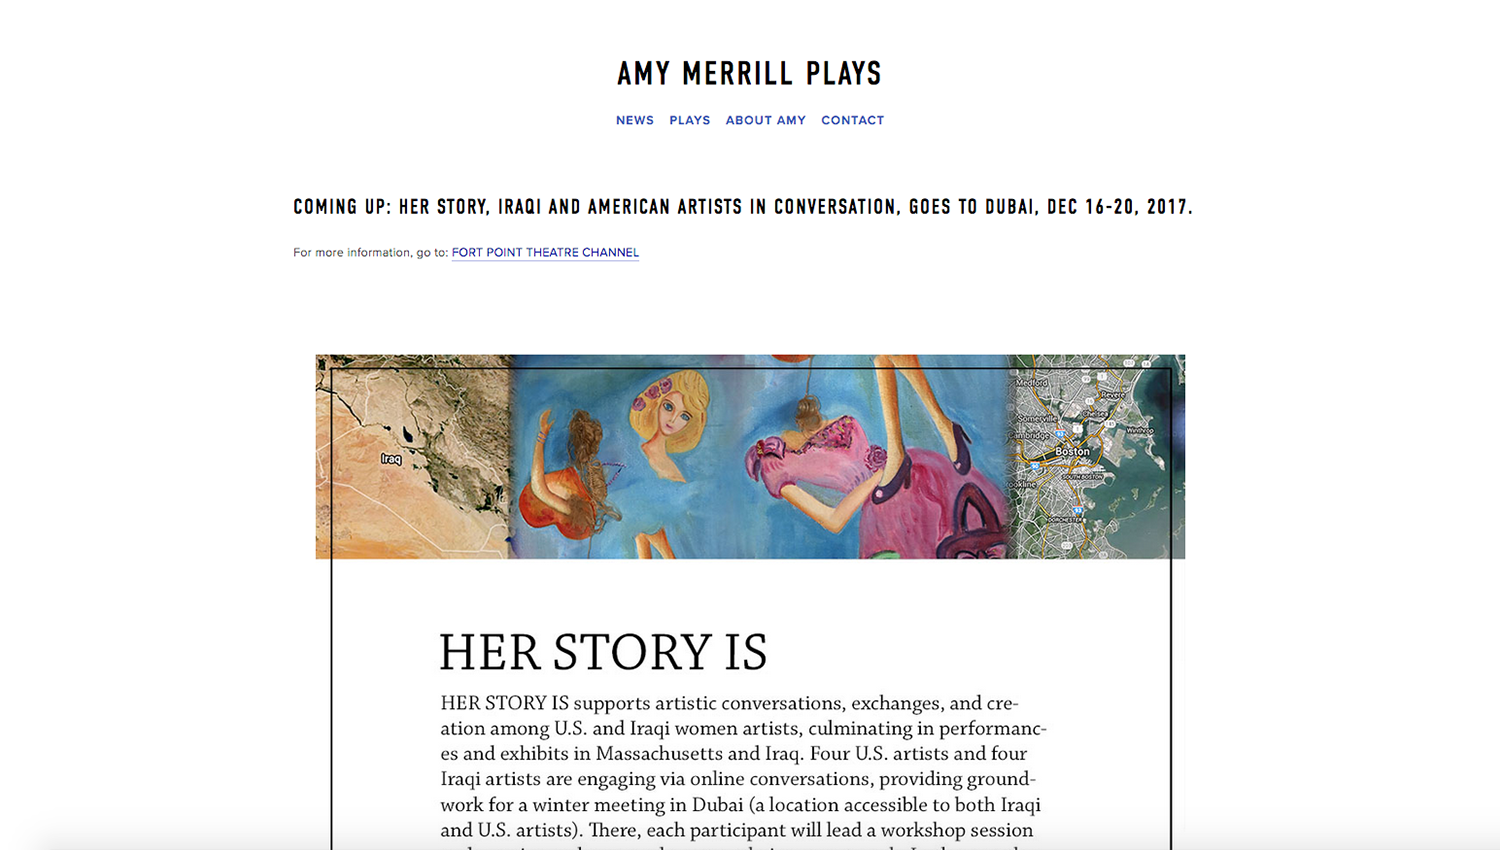 amymerrill1.png